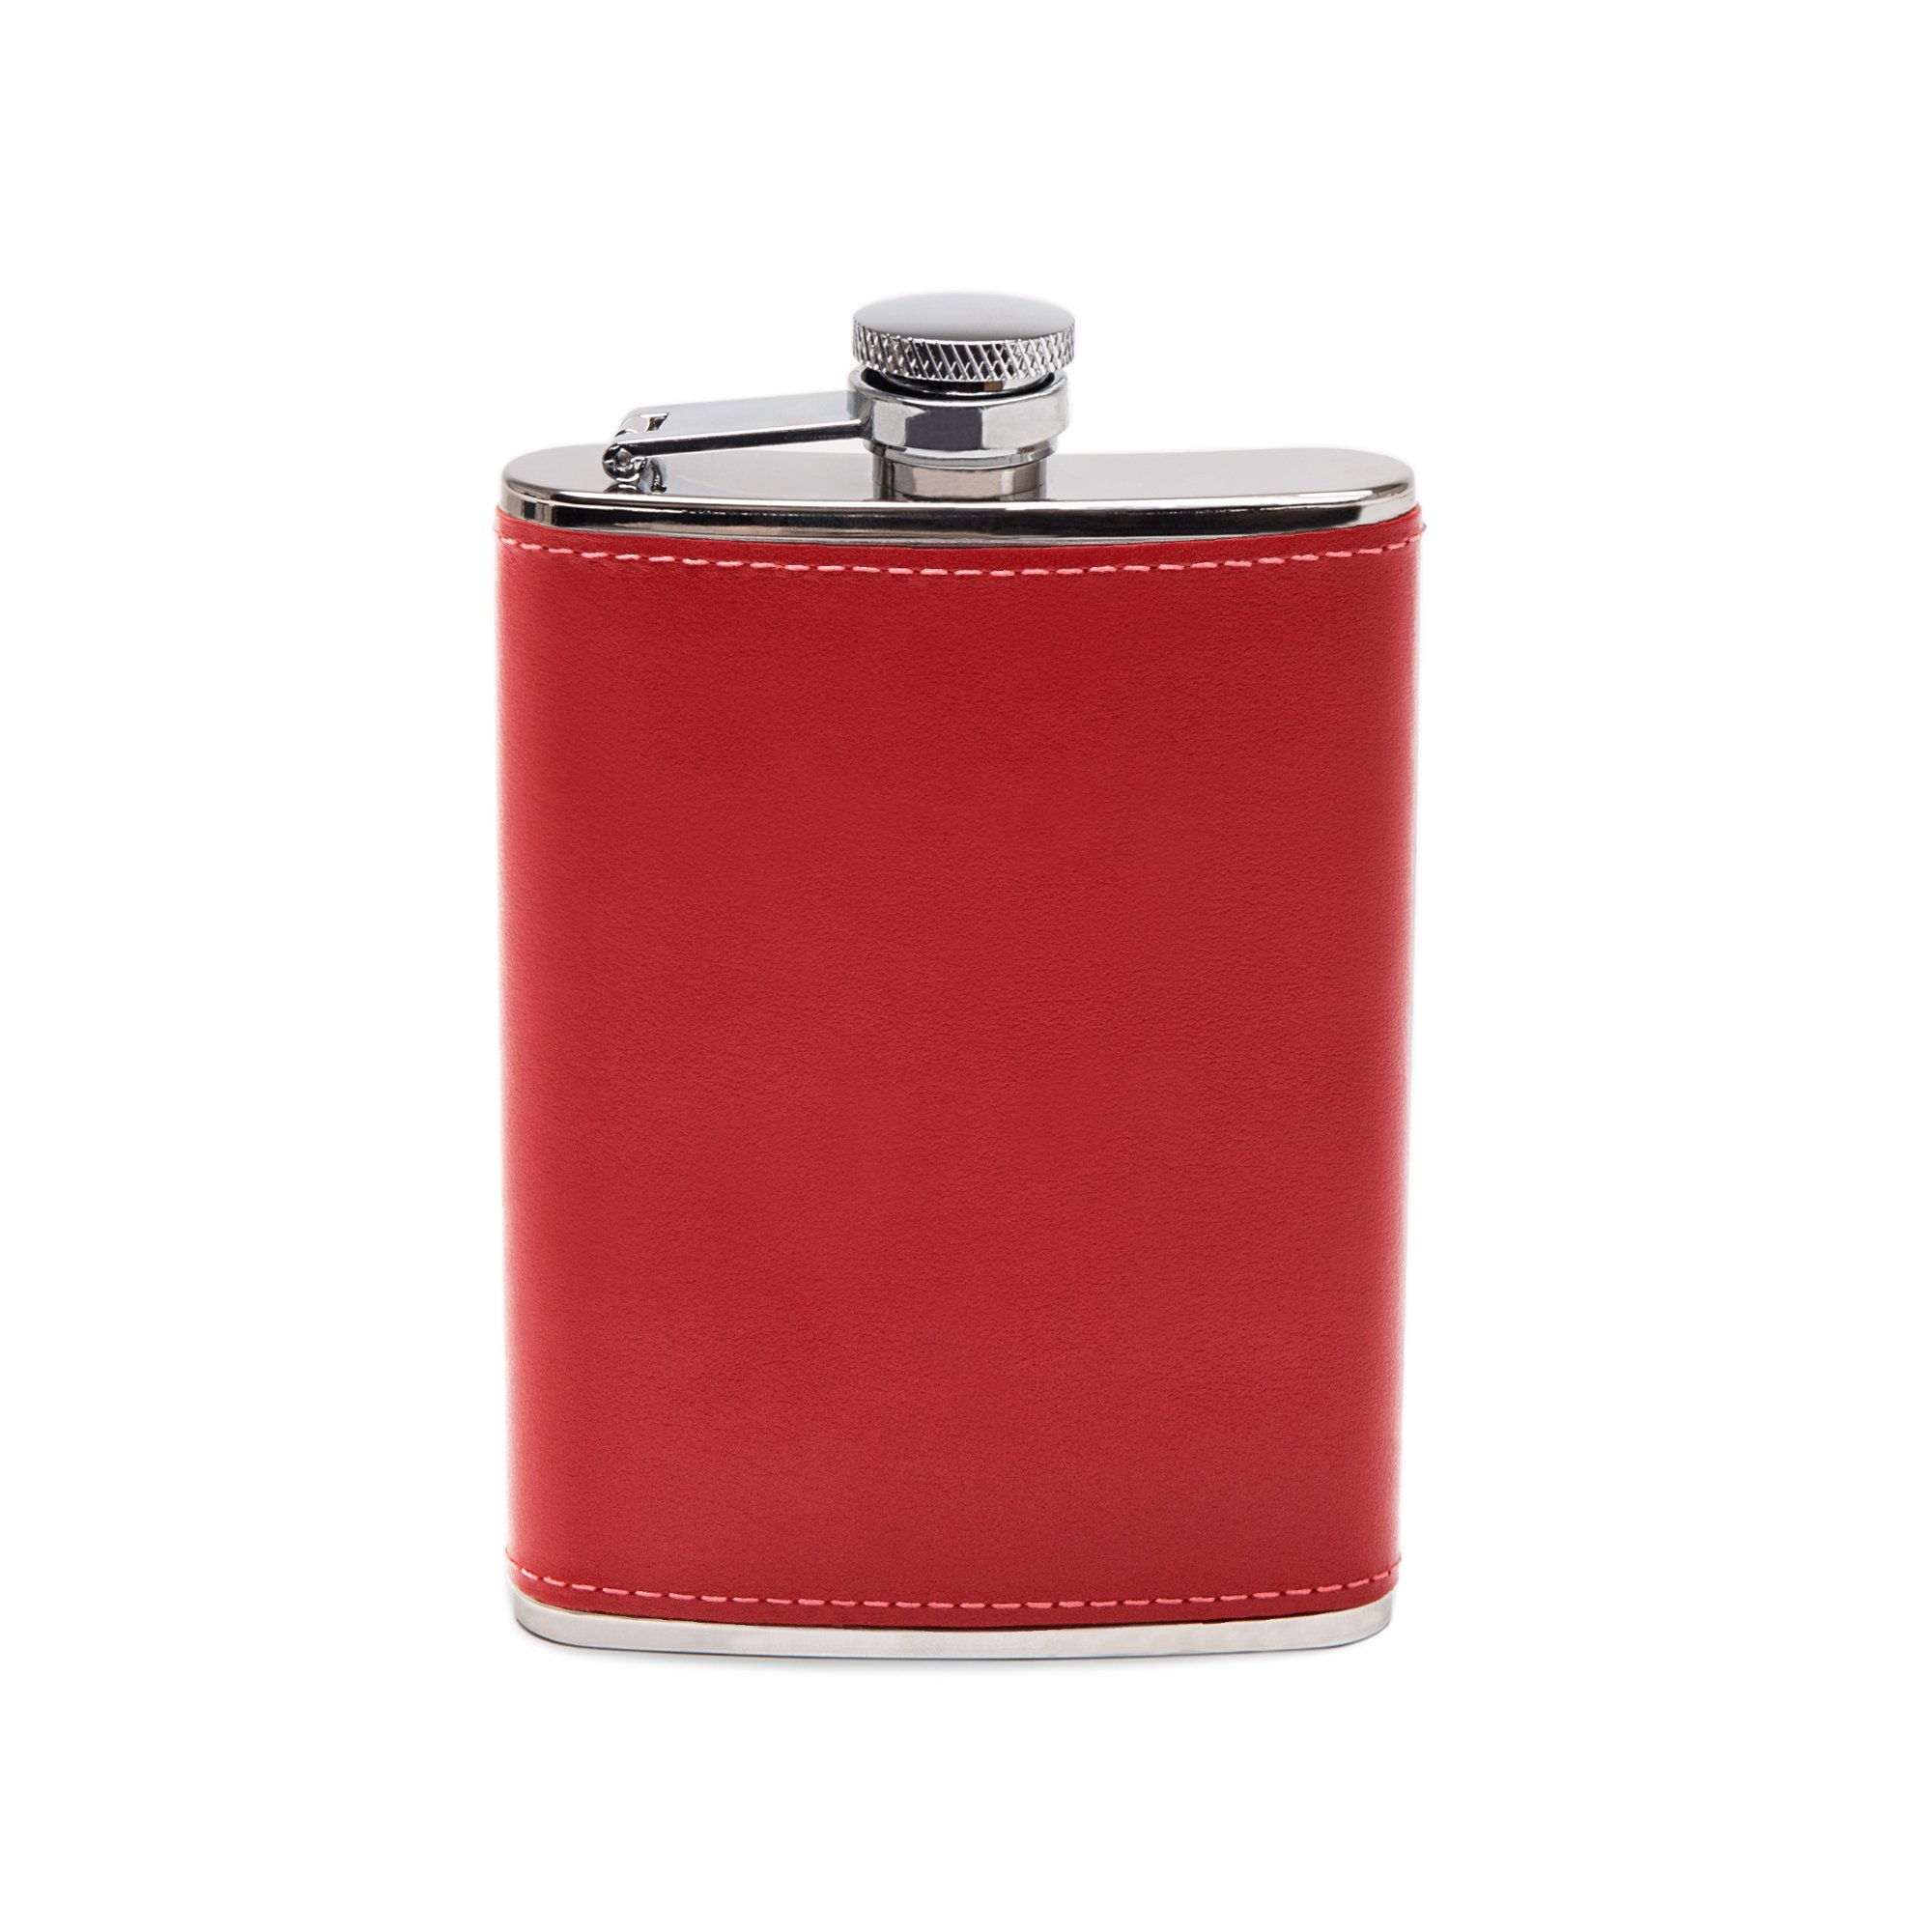 Ettinger Sterling Collection Captive Top Leather Bound Hip Flask, 6 Ounces - Red/Silver